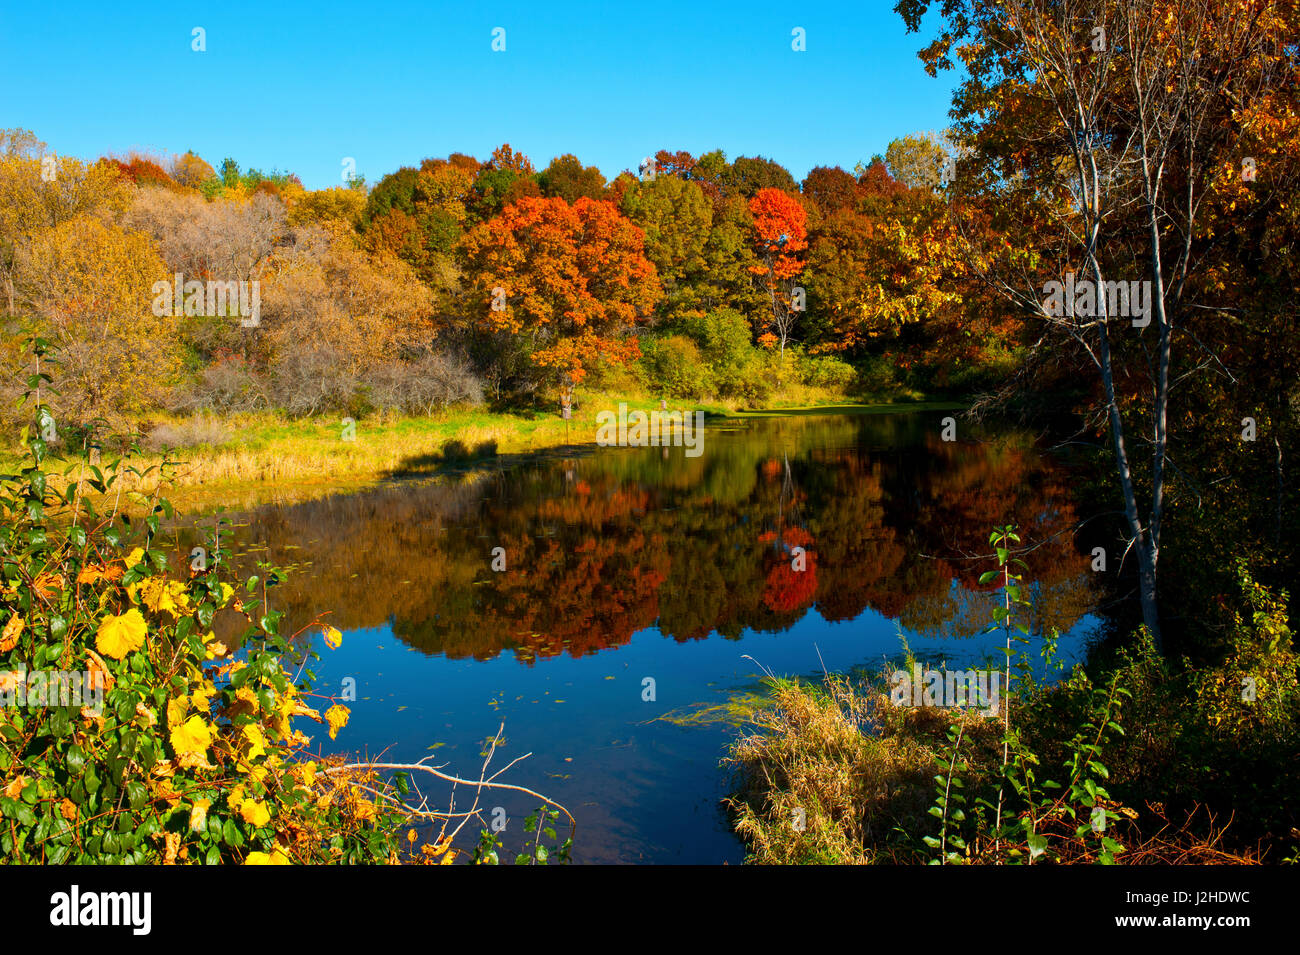 usa minnesota sunfish lake fall color reflected in pond